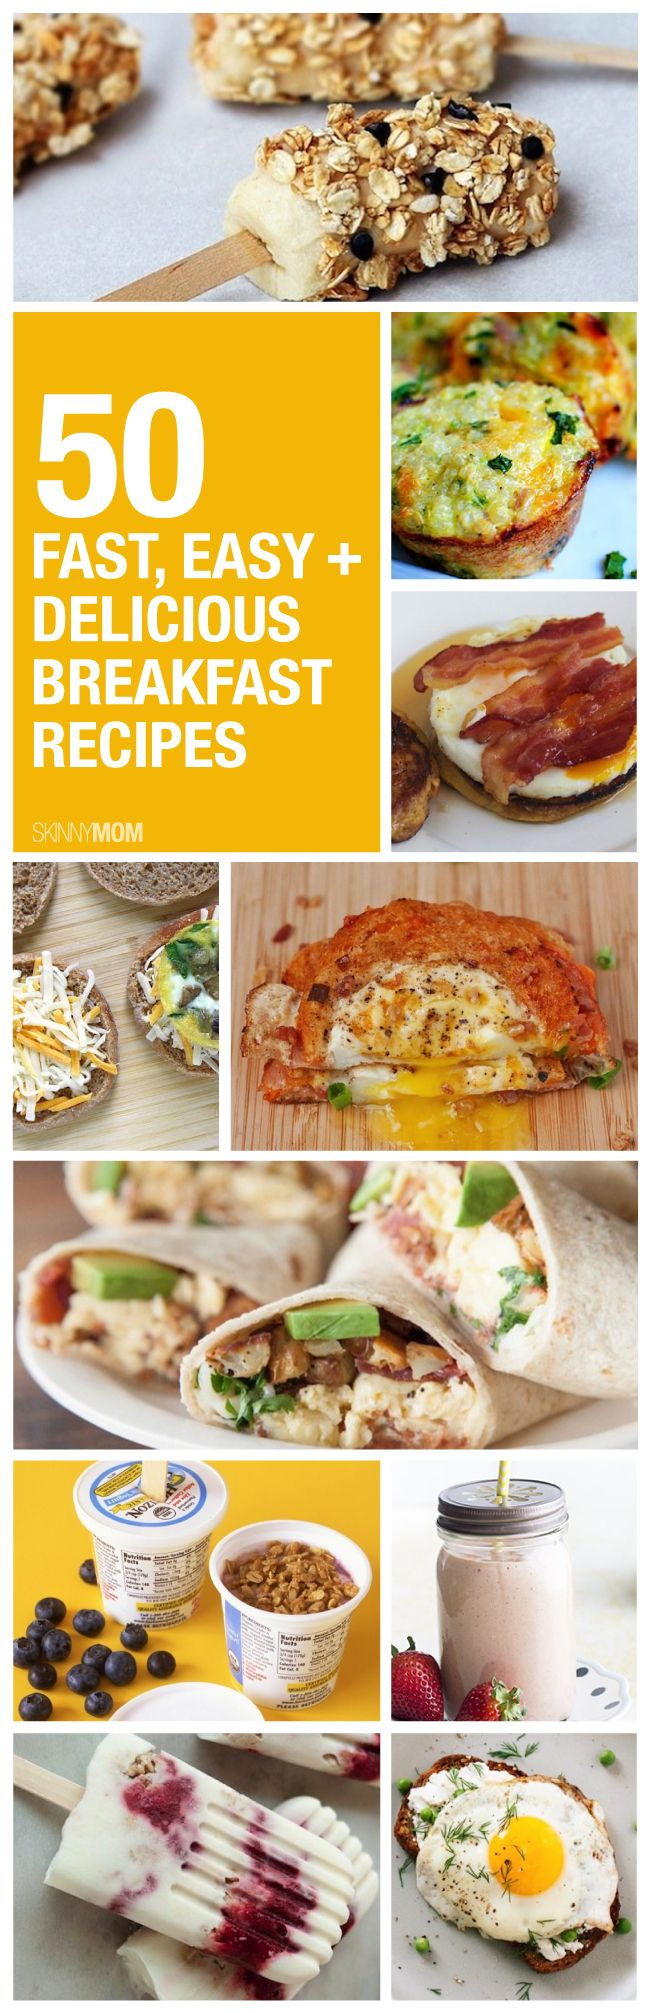 We've compiled 50 healthy breakfast recipes to make your mornings that much easier!